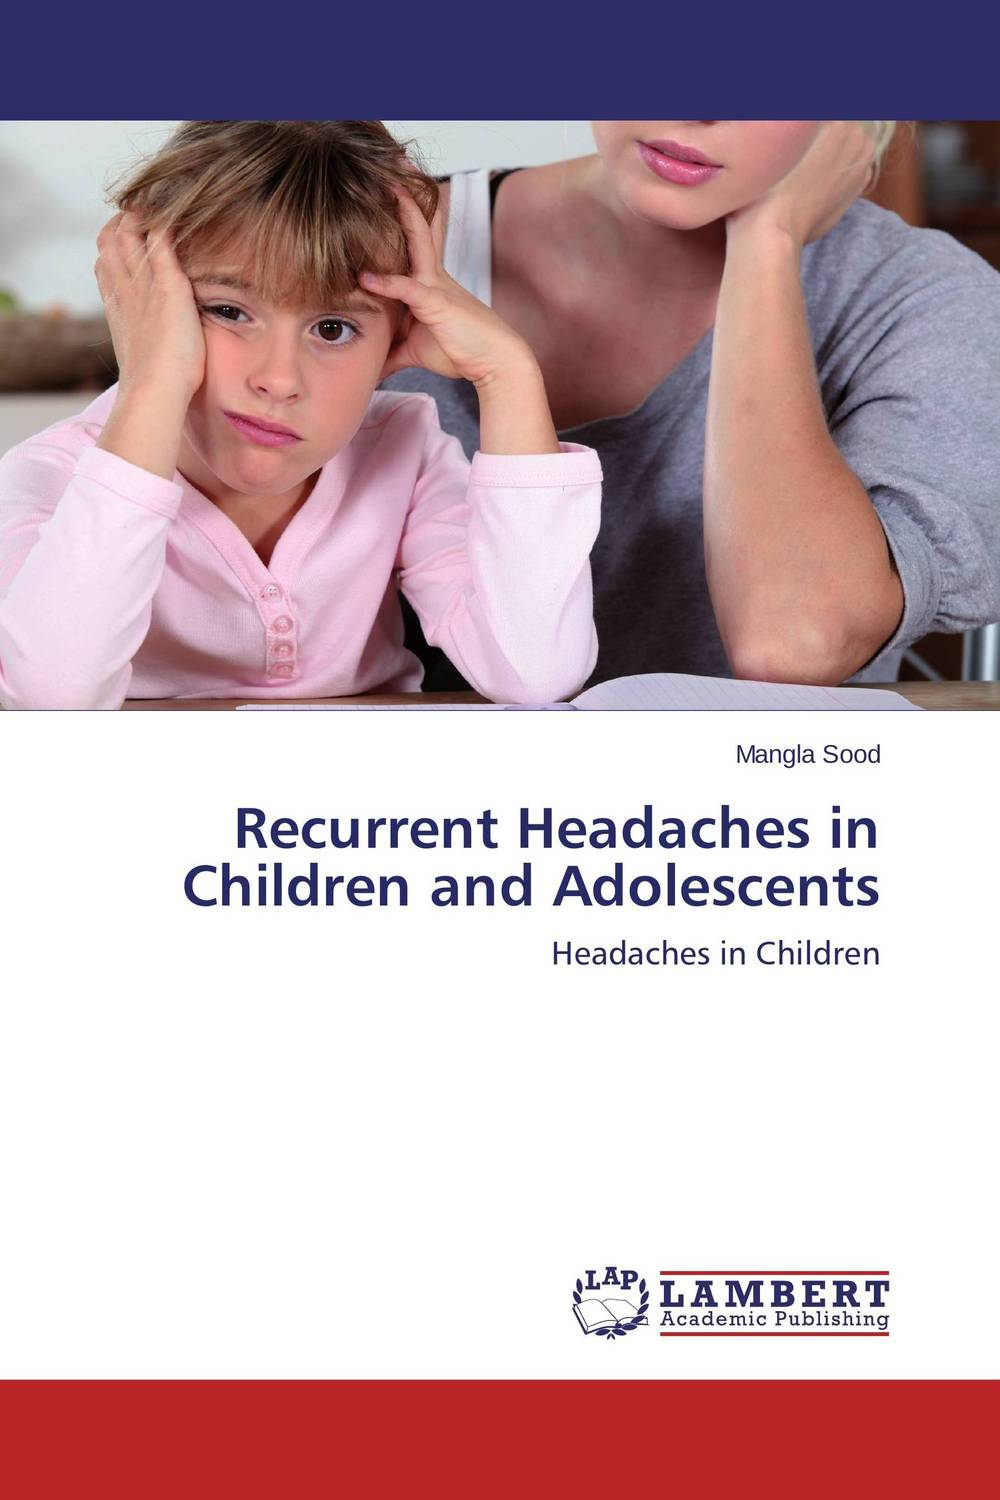 Recurrent Headaches in Children and Adolescents assessment and treatment of depression in children and adolescents